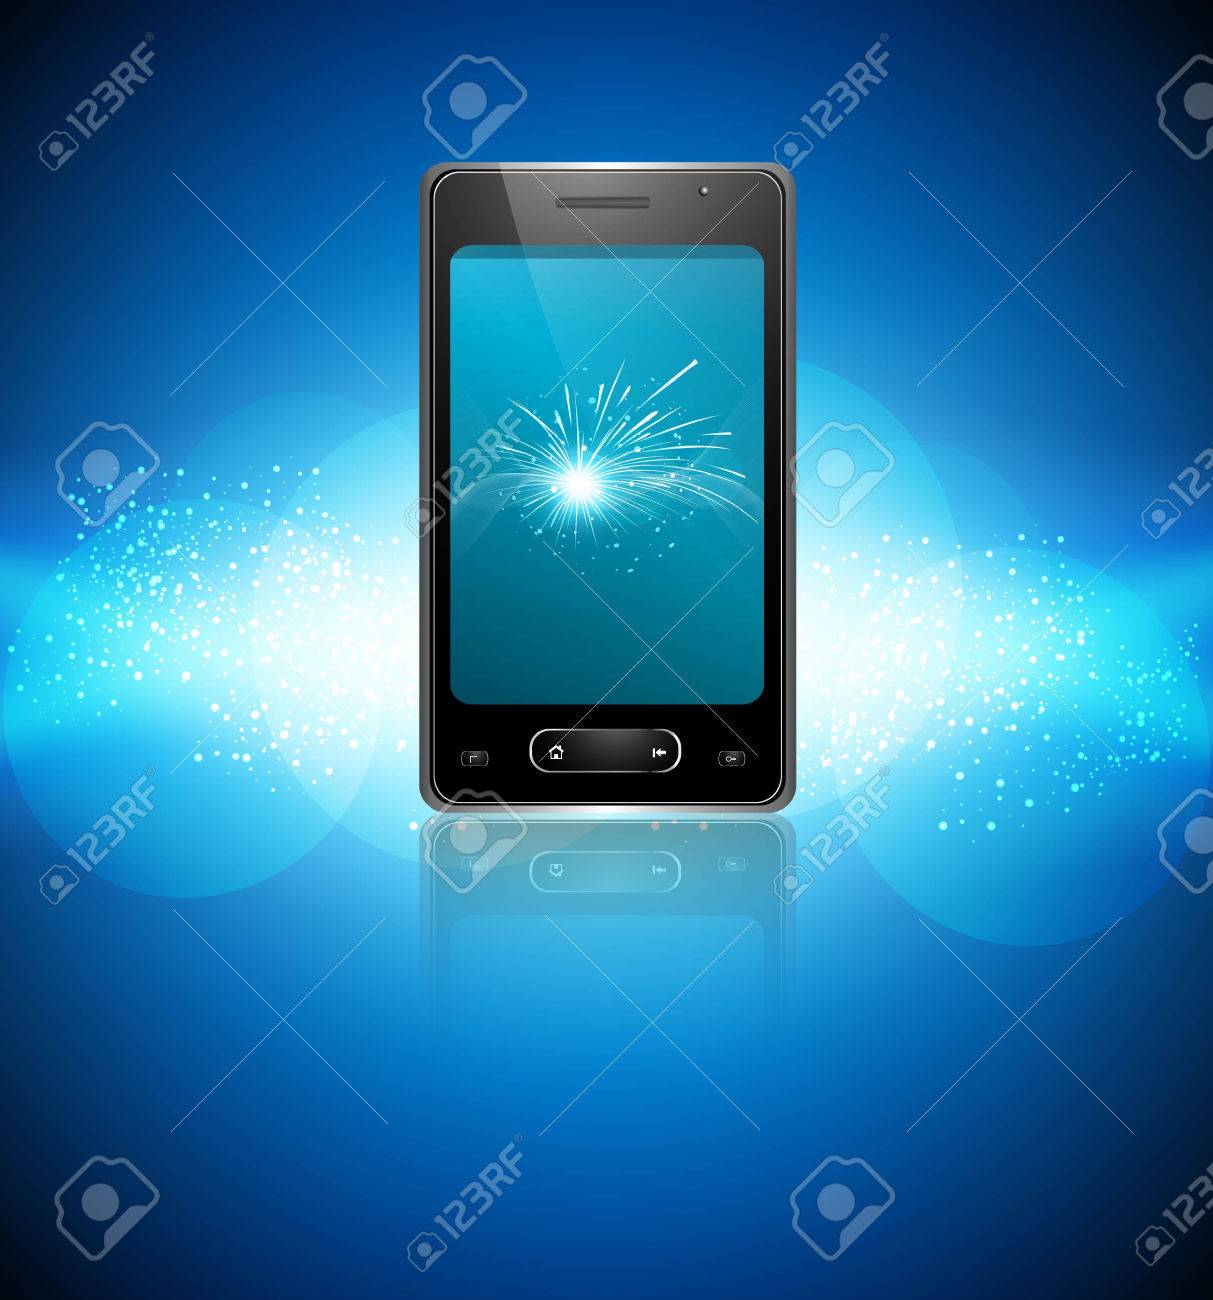 Mobile smartphone original reflection blue colorful background Stock Vector - 22274448